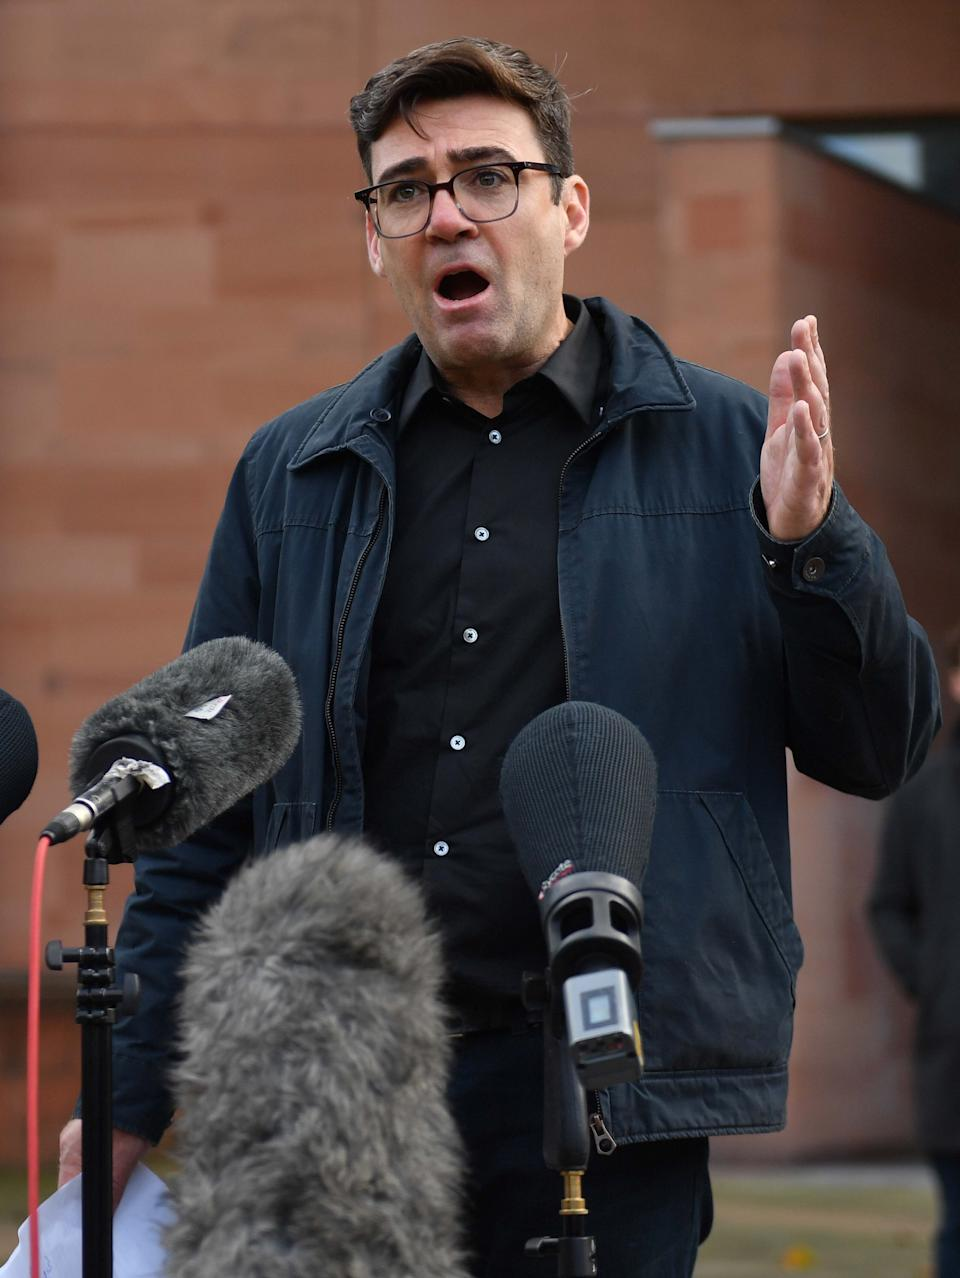 Greater Manchester mayor Andy Burnham speaking to the media outside Bridgewater Hall, Manchester, following last-ditch talks with the prime minister aimed at securing additional financial support for his consent on new coronavirus restrictions (Photo: Jacob King - PA Images via Getty Images)